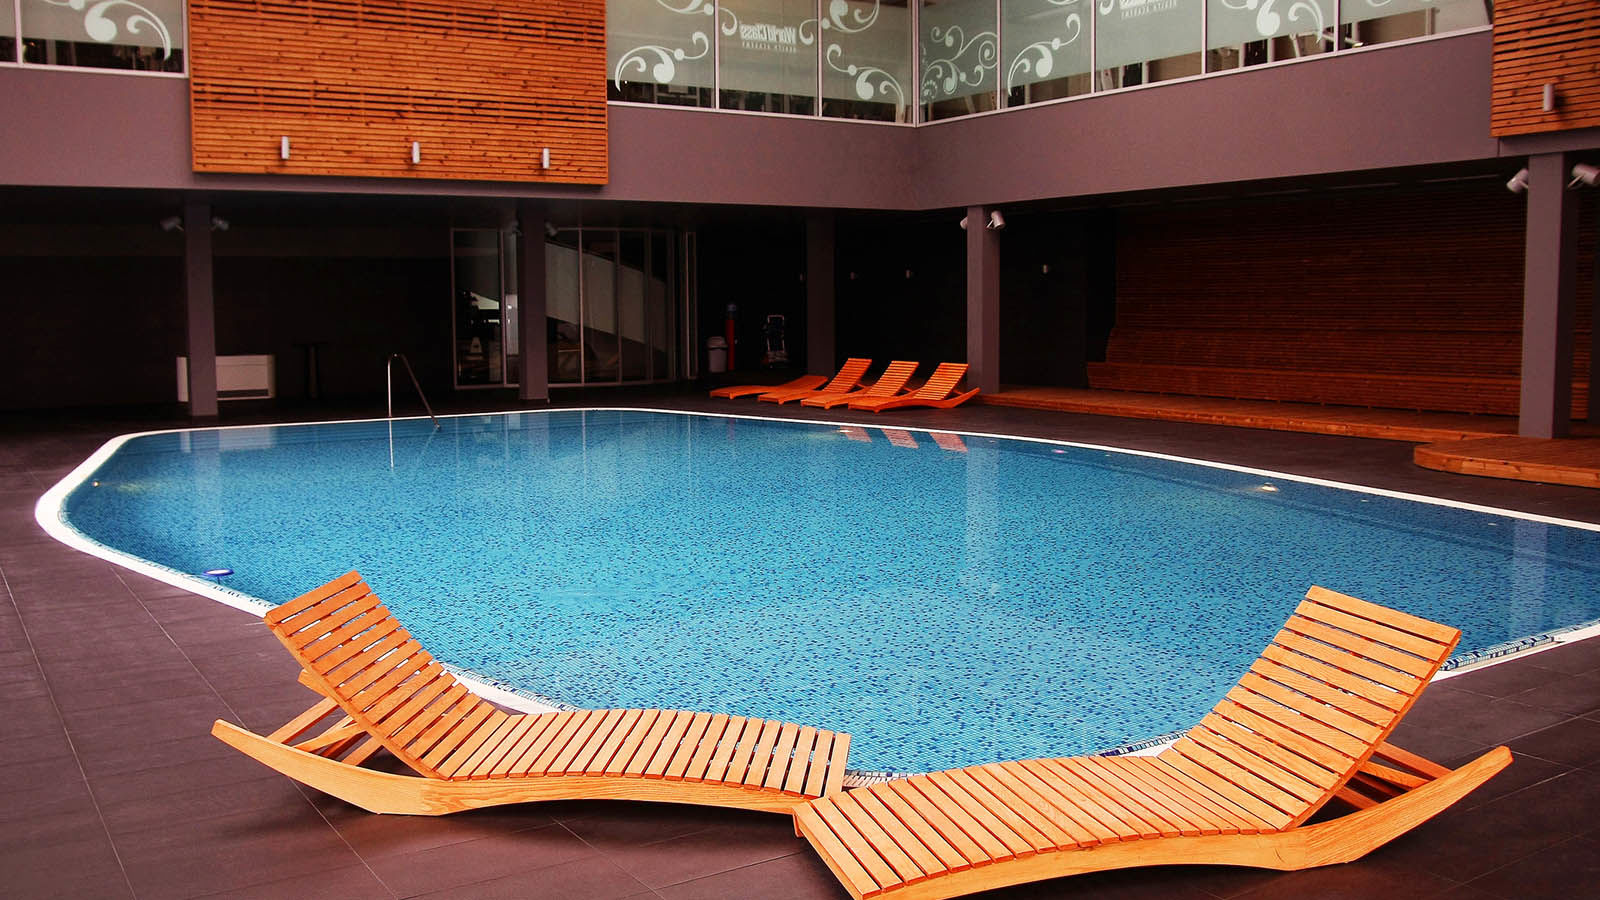 The Westin Zagreb indoor pool